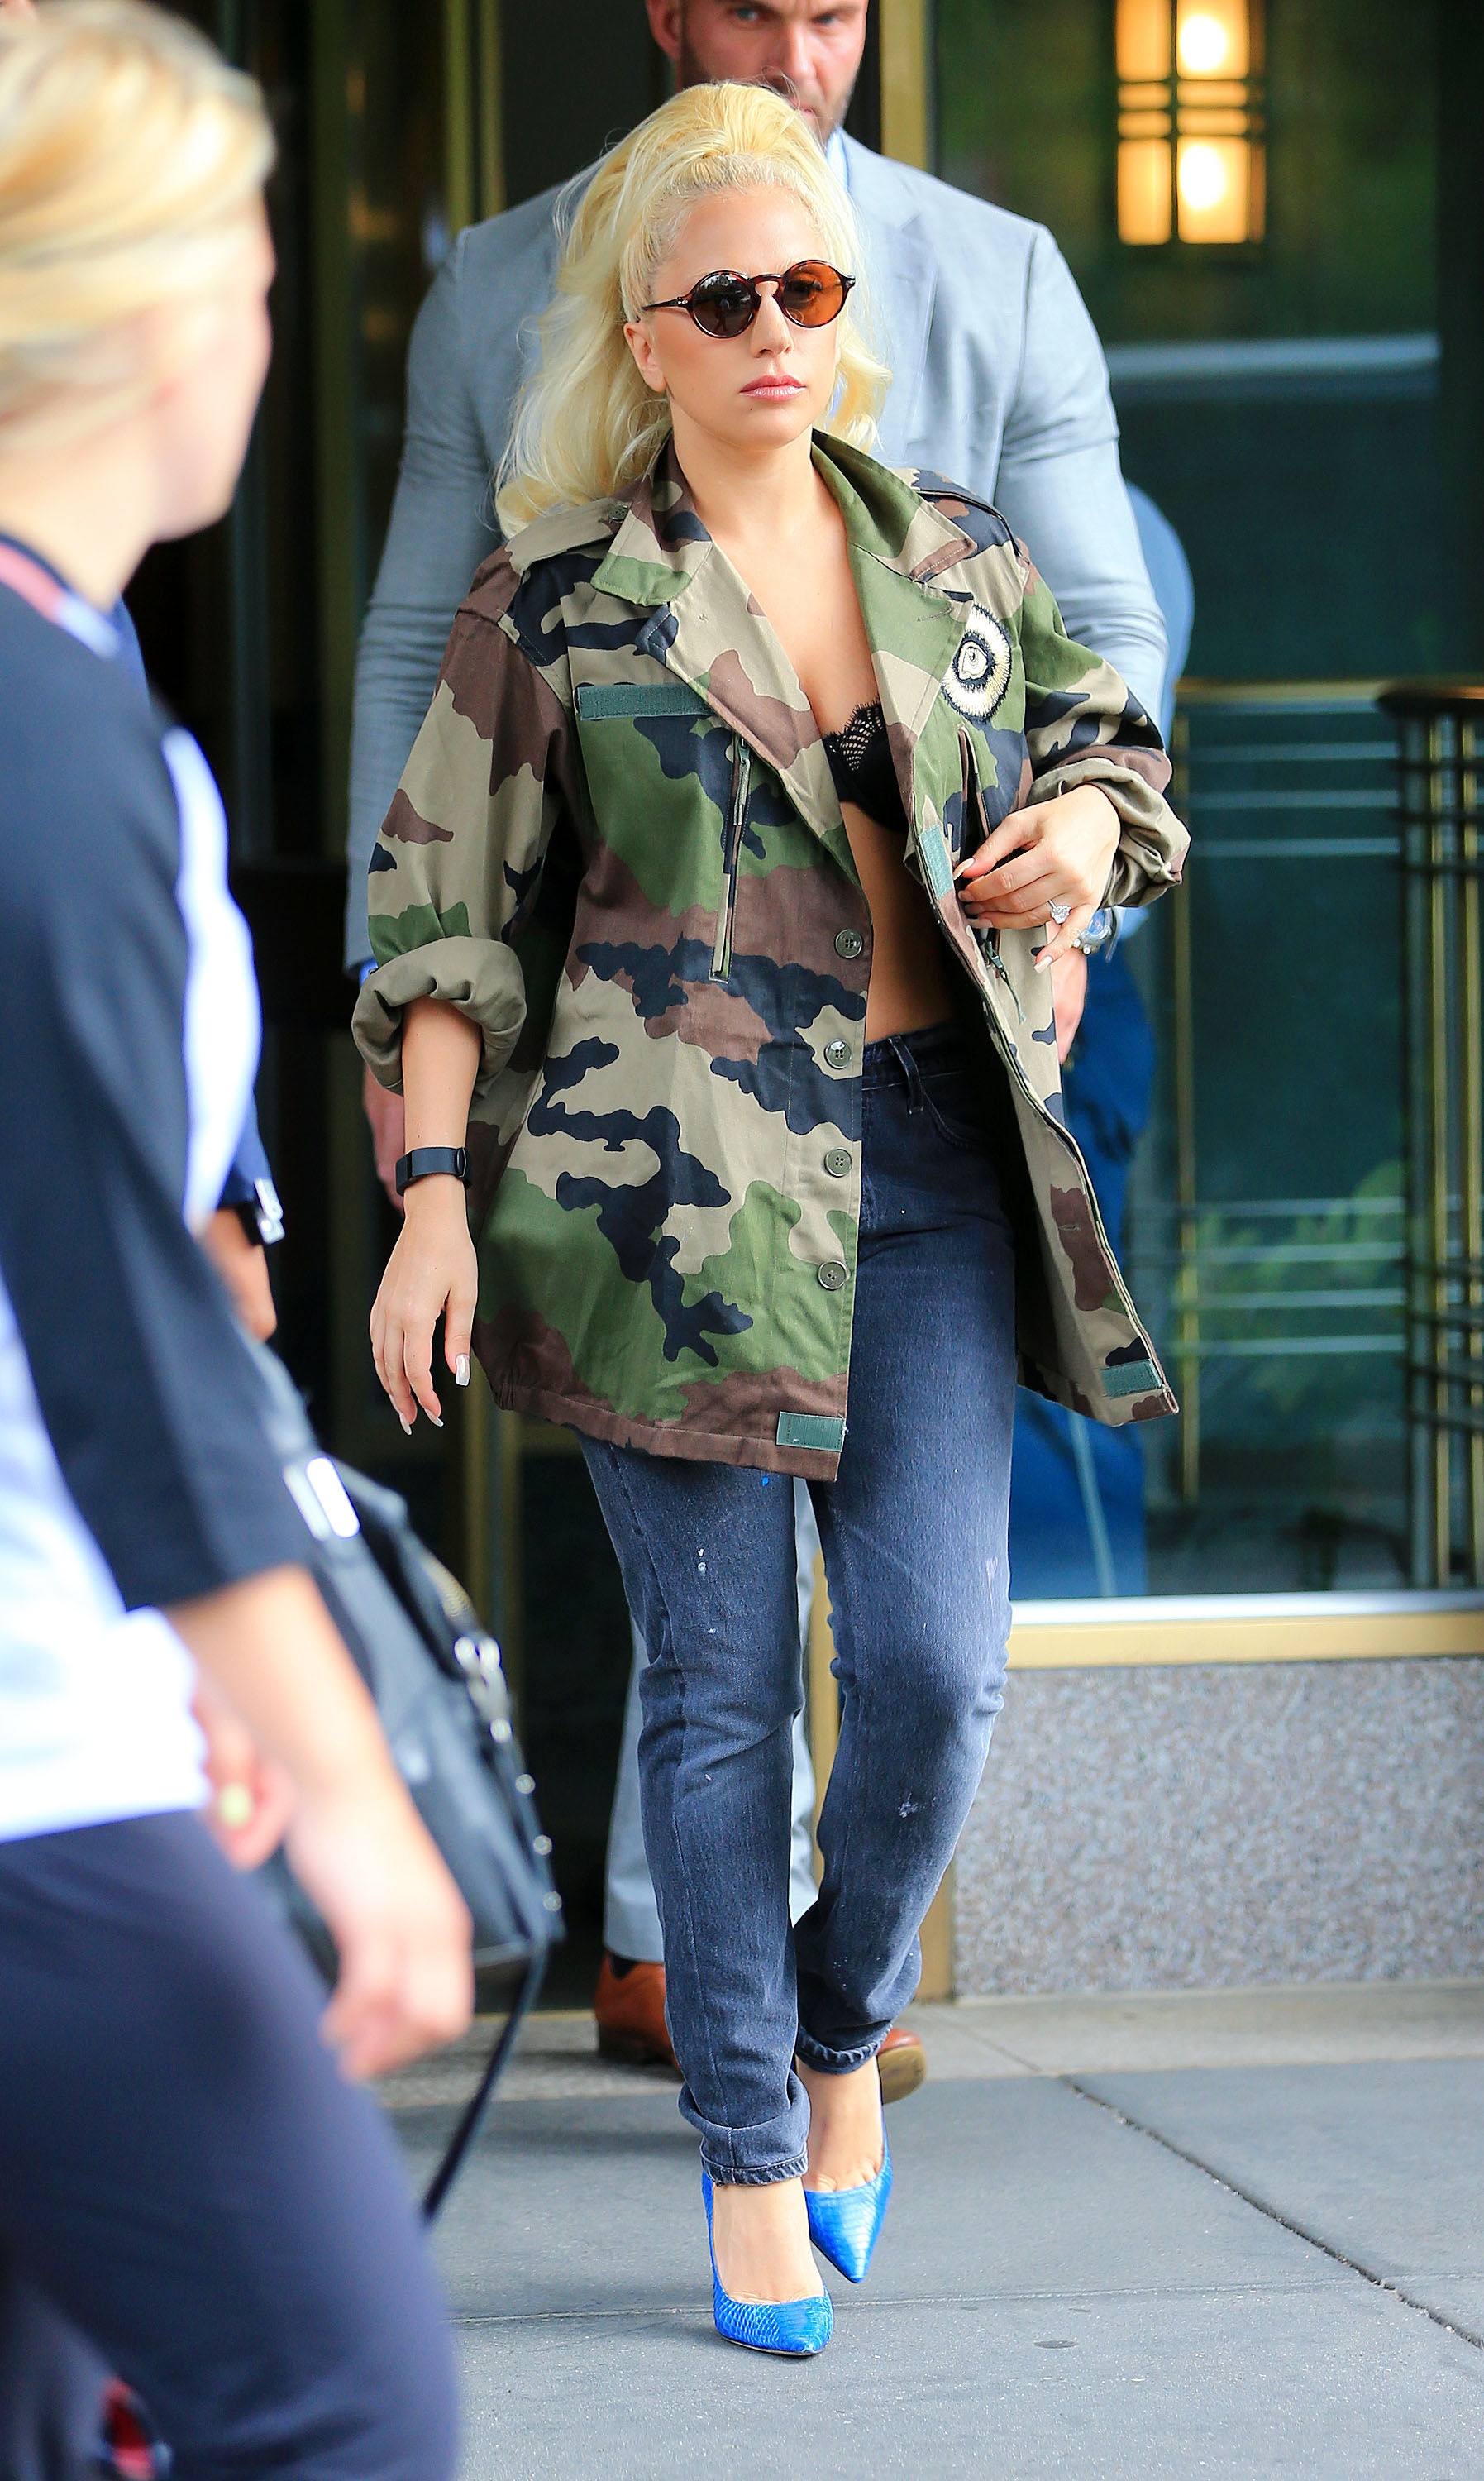 7-26-15-Leaving-her-apartment-in-NYC-004